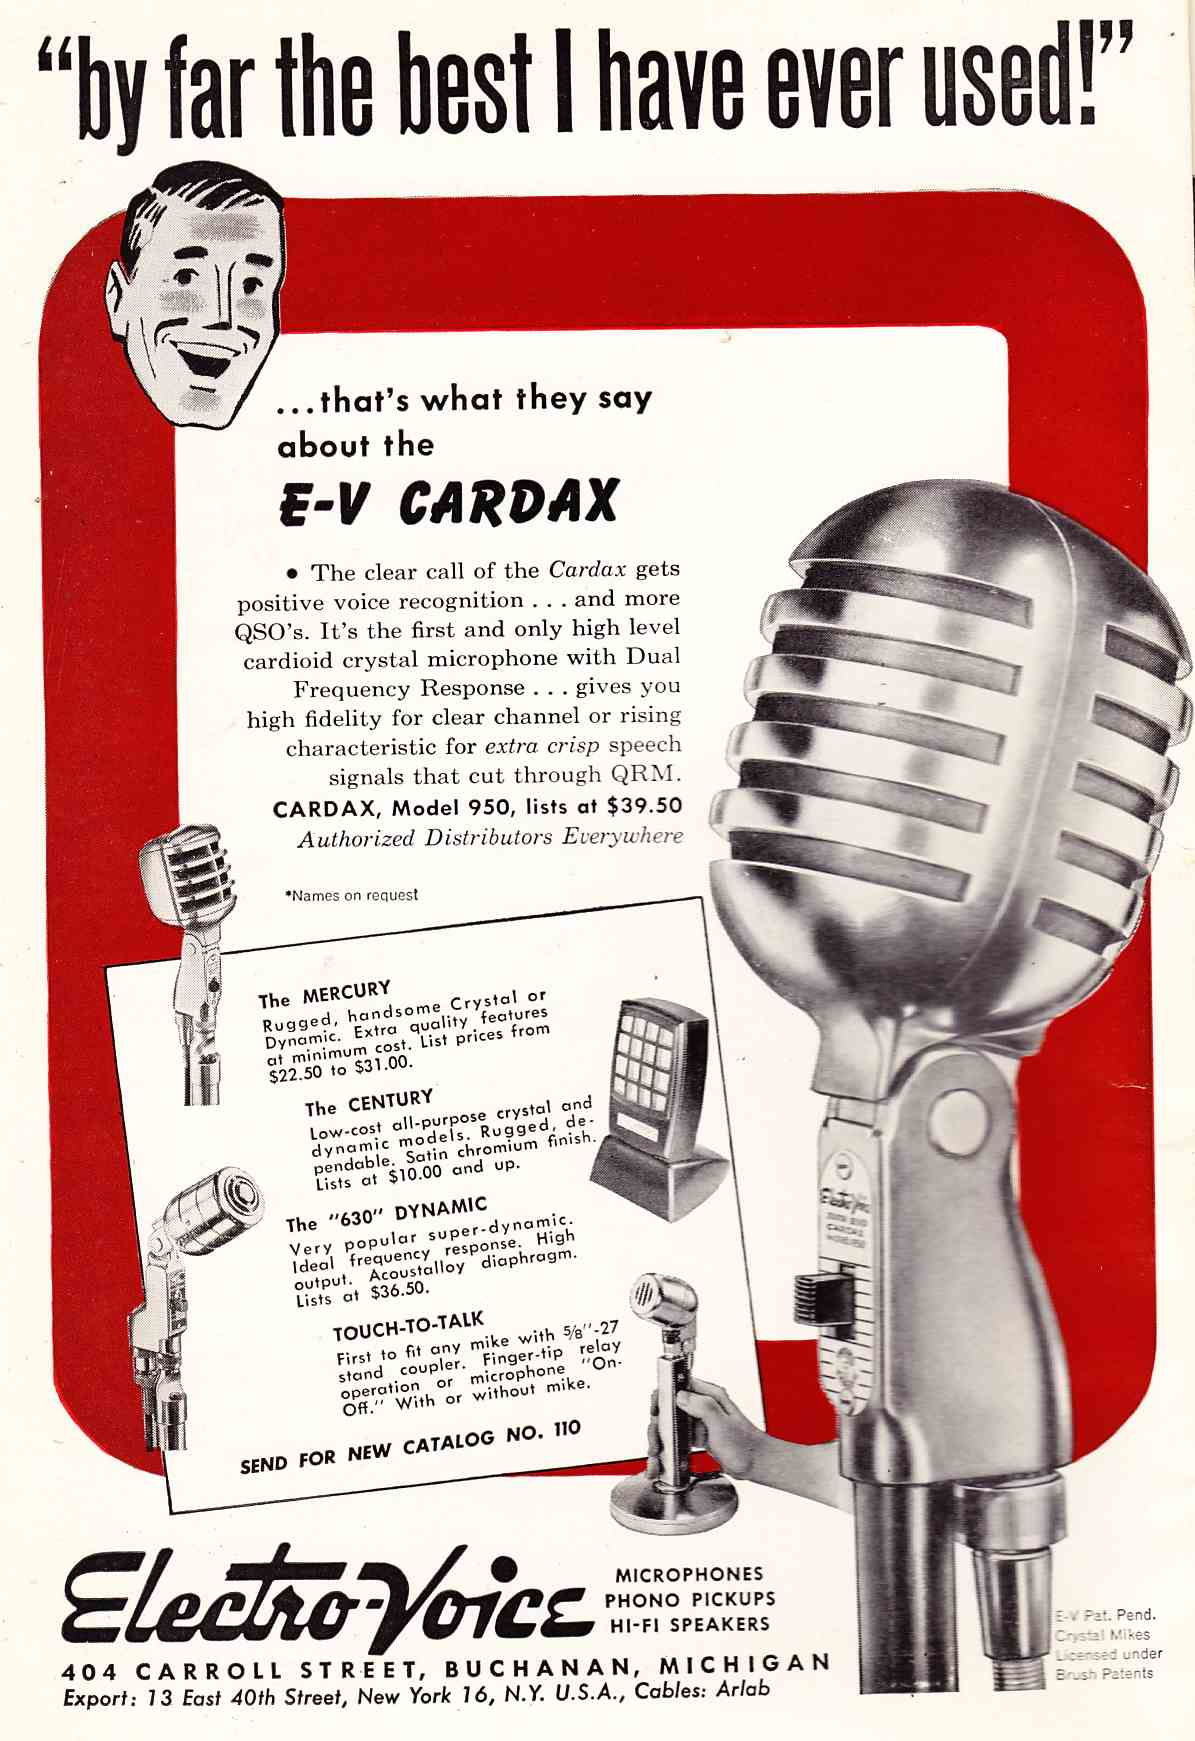 Radio Communications Mics Of The 1940s Part 2 Preservation Sound Dynamic Microphone Amplifier Using Transistors Electrovoice Cardax Crystal Cardiod